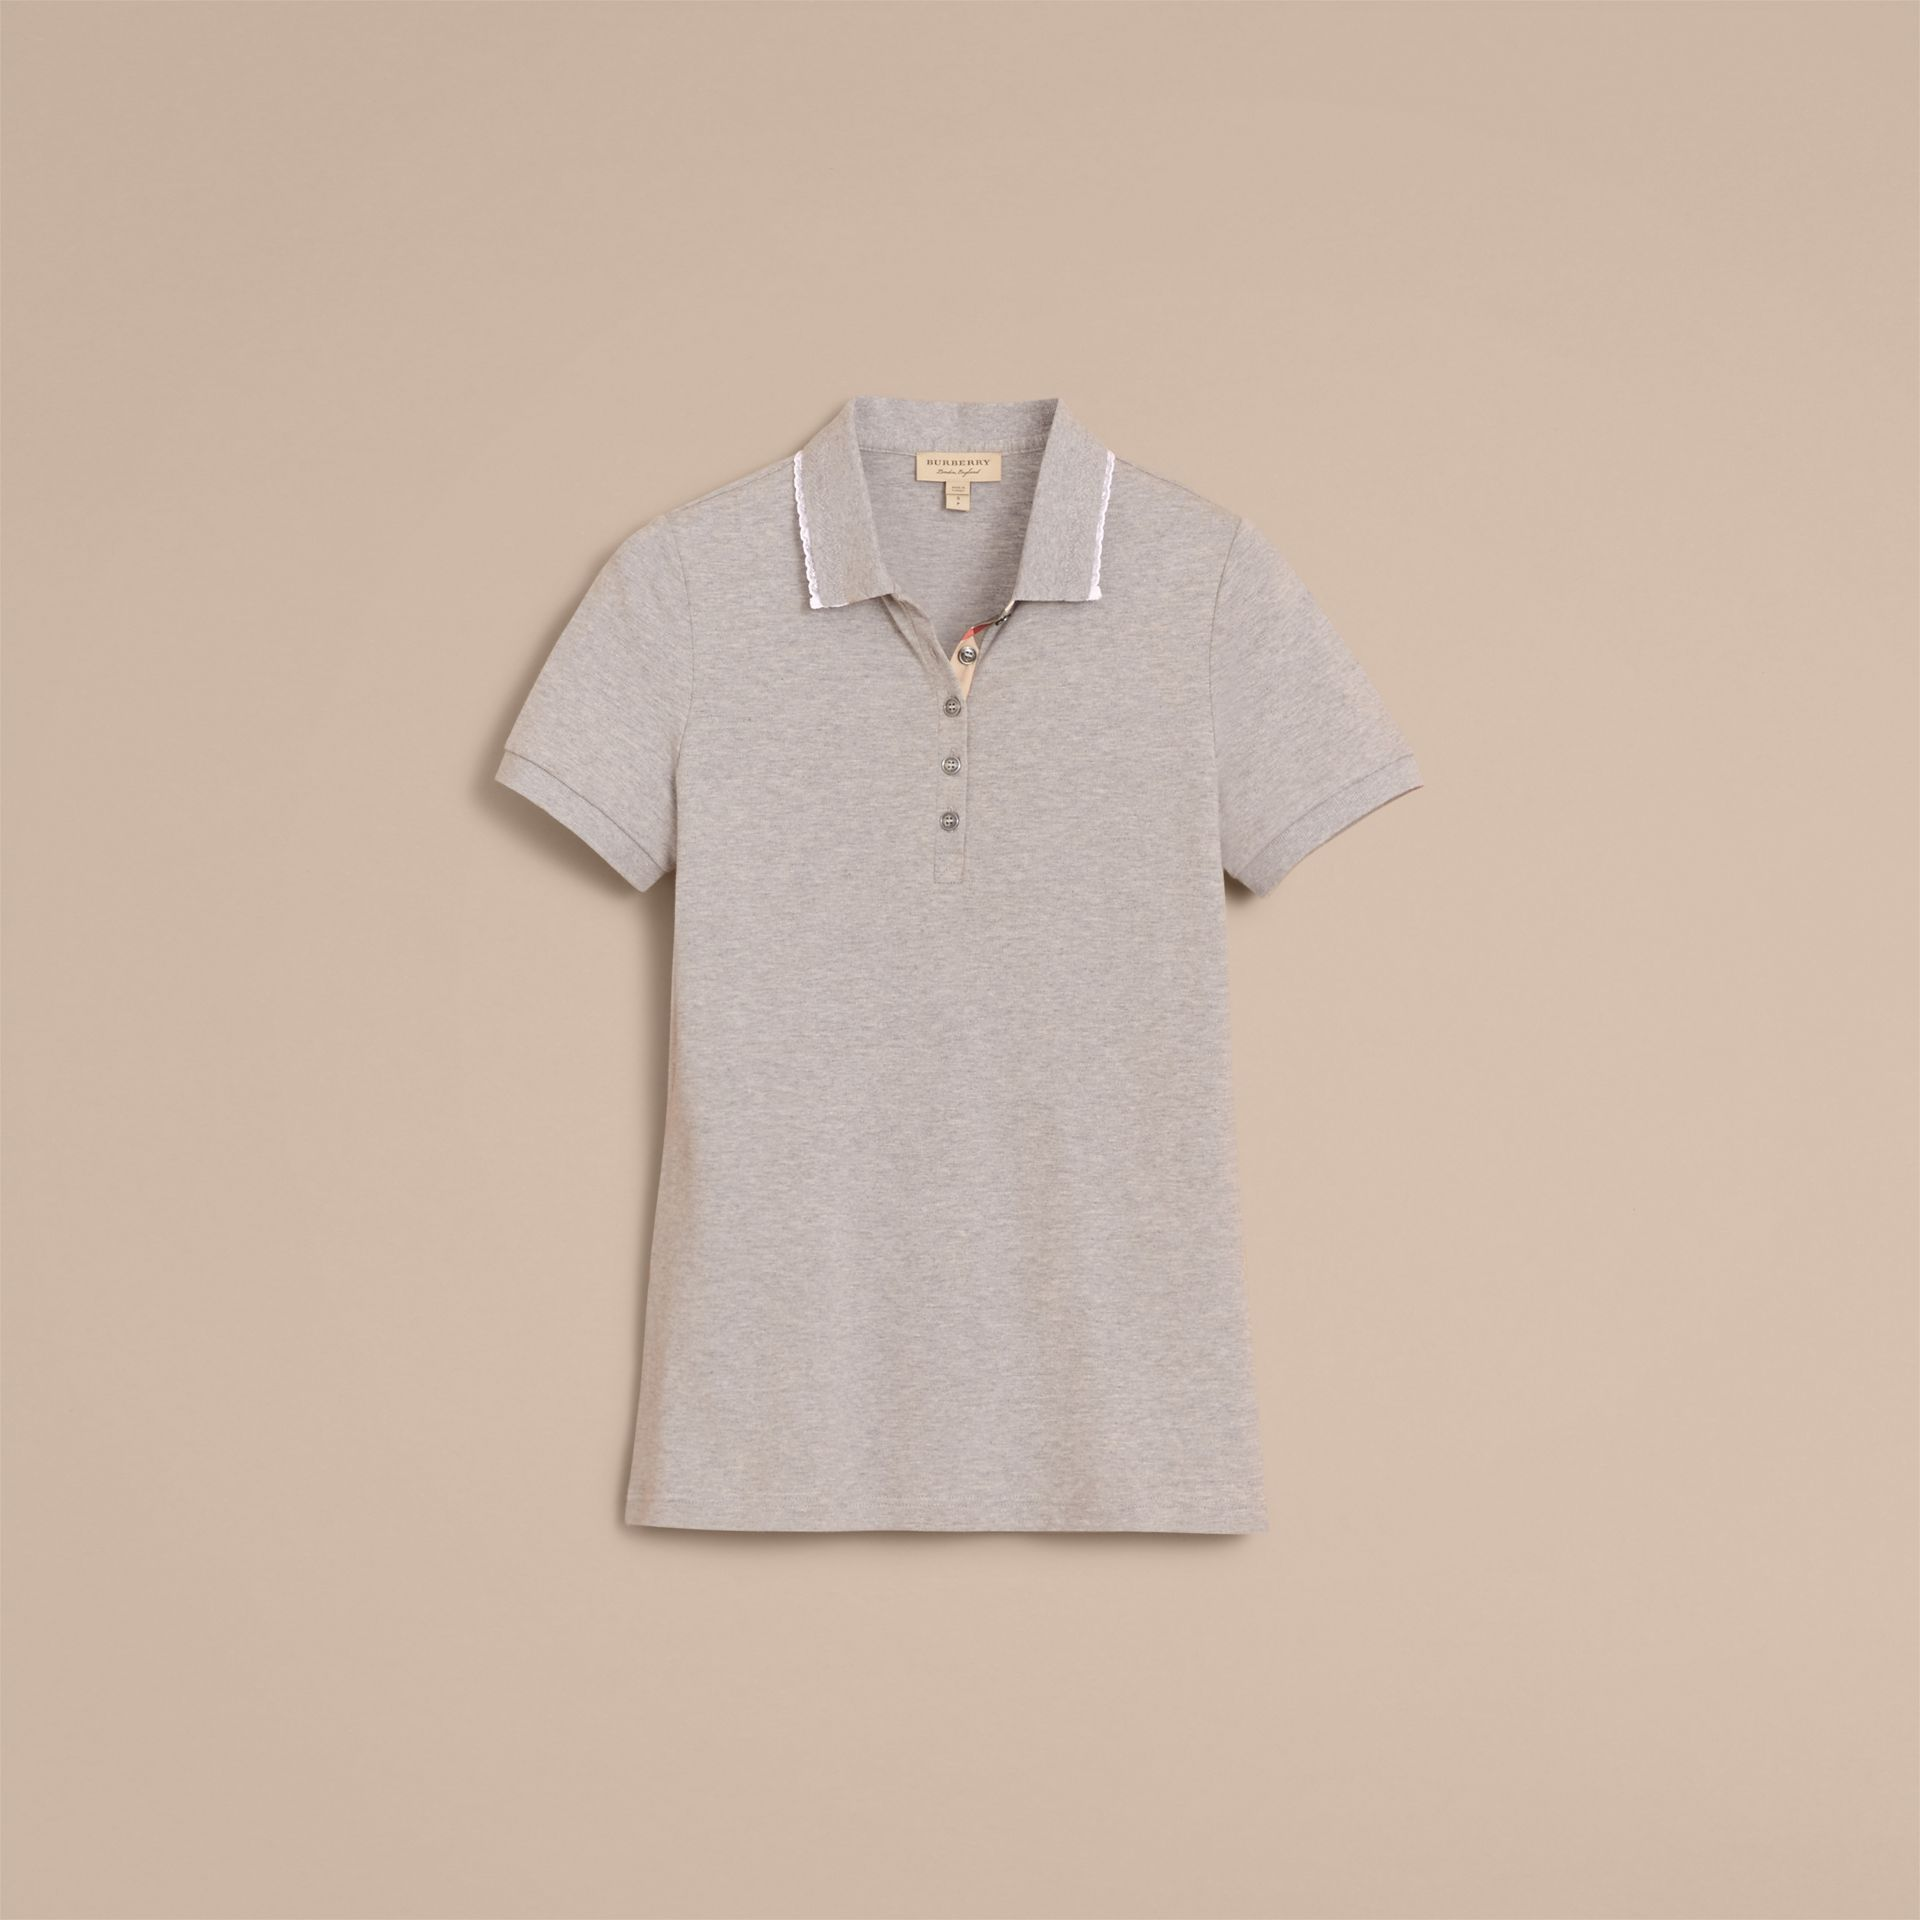 Lace Trim Cotton Blend Polo Shirt with Check Detail in Pale Grey Melange - Women | Burberry - gallery image 4